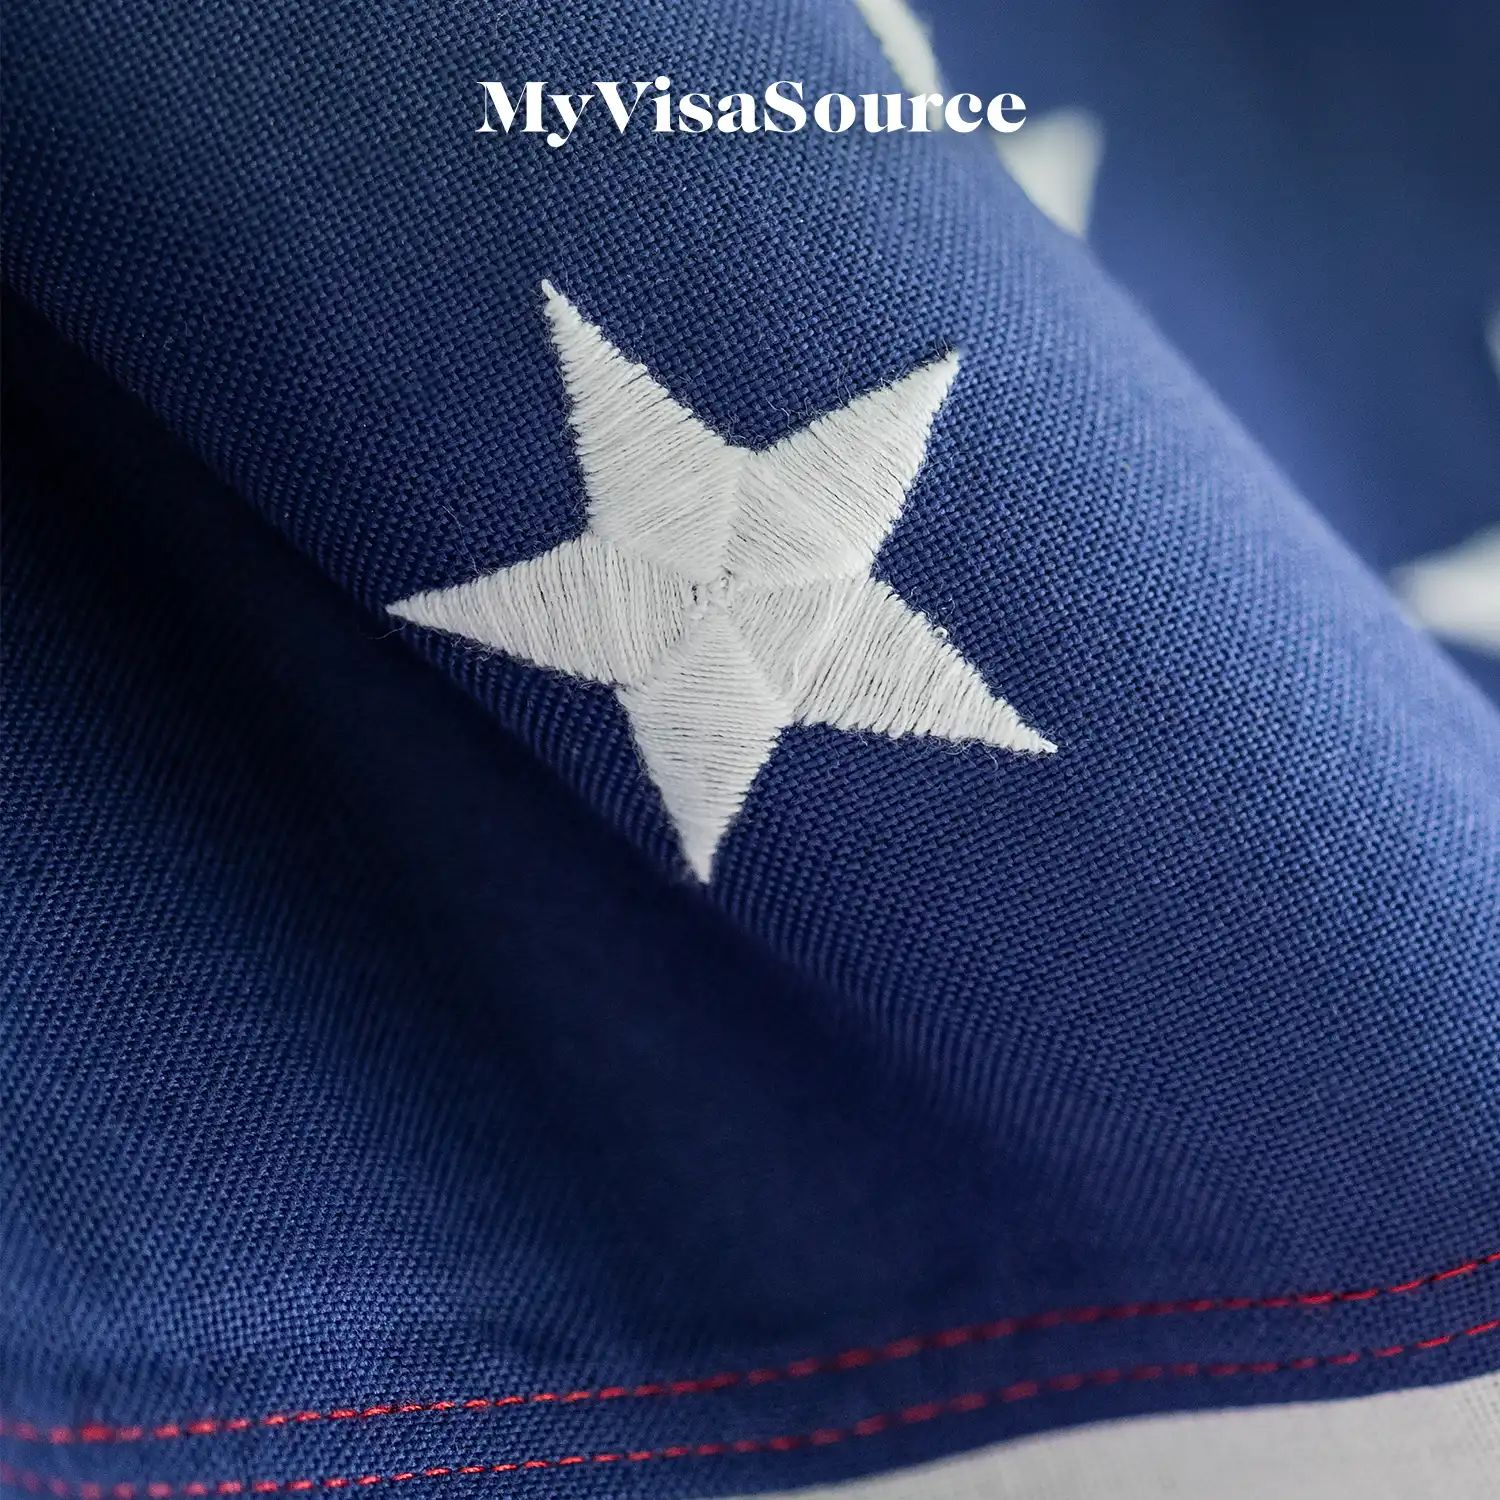 close-up-of-a-star-on-an-american-flag-by-my-visa-source